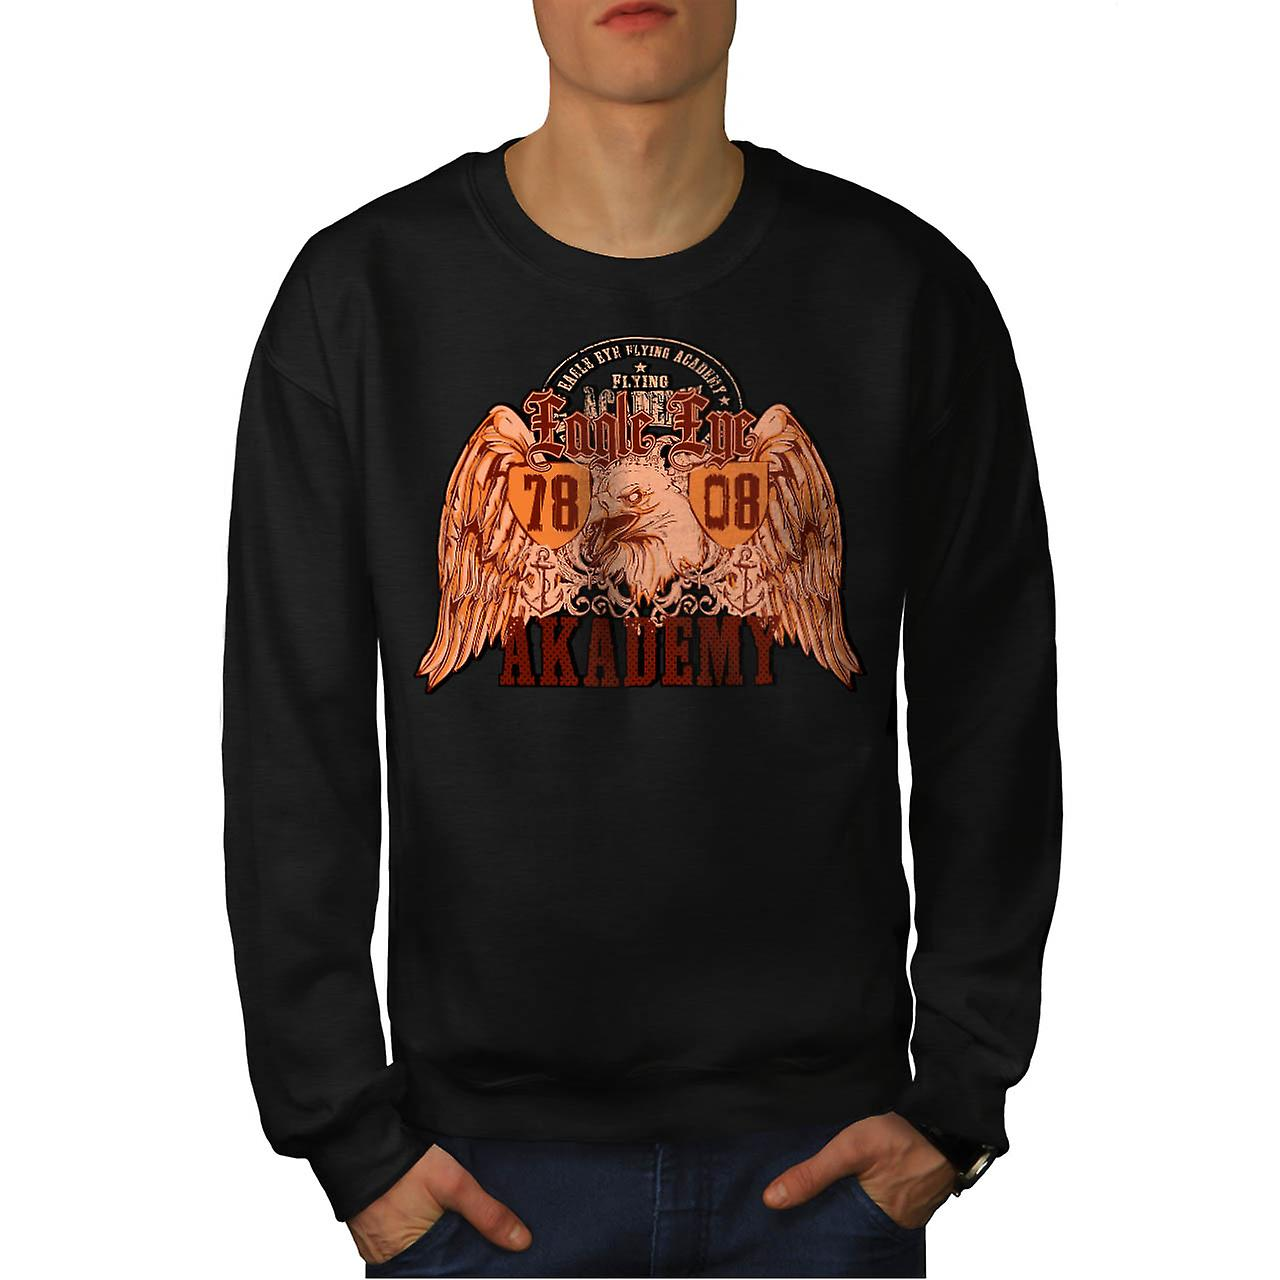 Eagle Eye Flying Team Academy hombres negro sudadera | Wellcoda